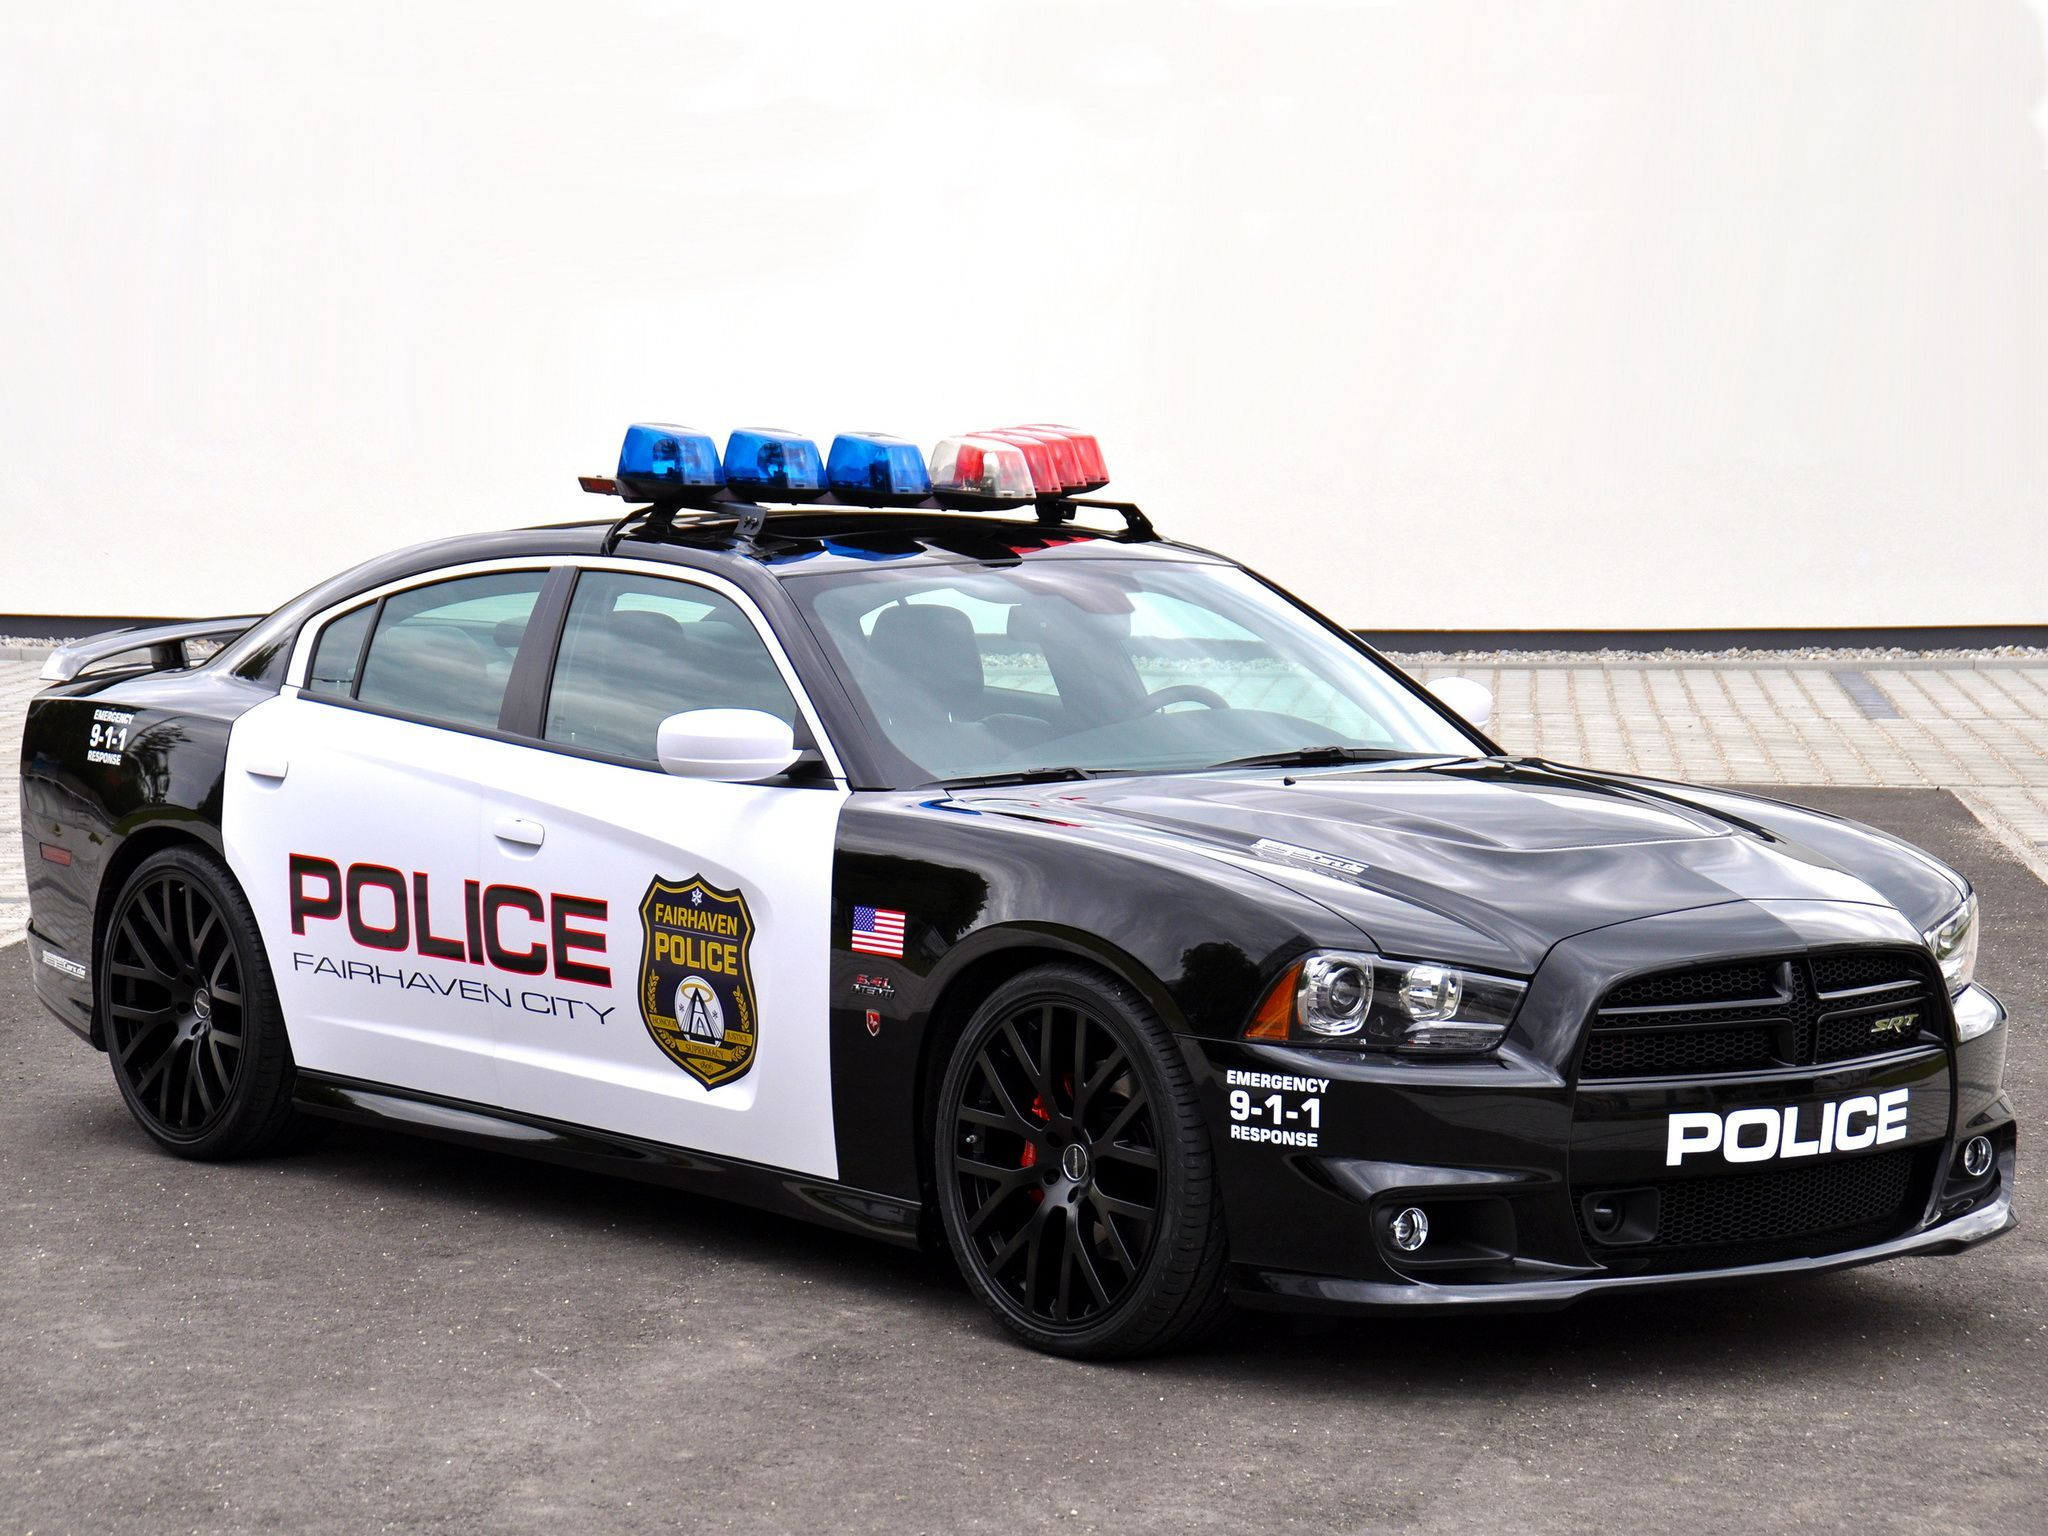 Police cars pictures me and charger police car img_4741 jpg authority in all professions pinterest police cars dodge charger and dodge